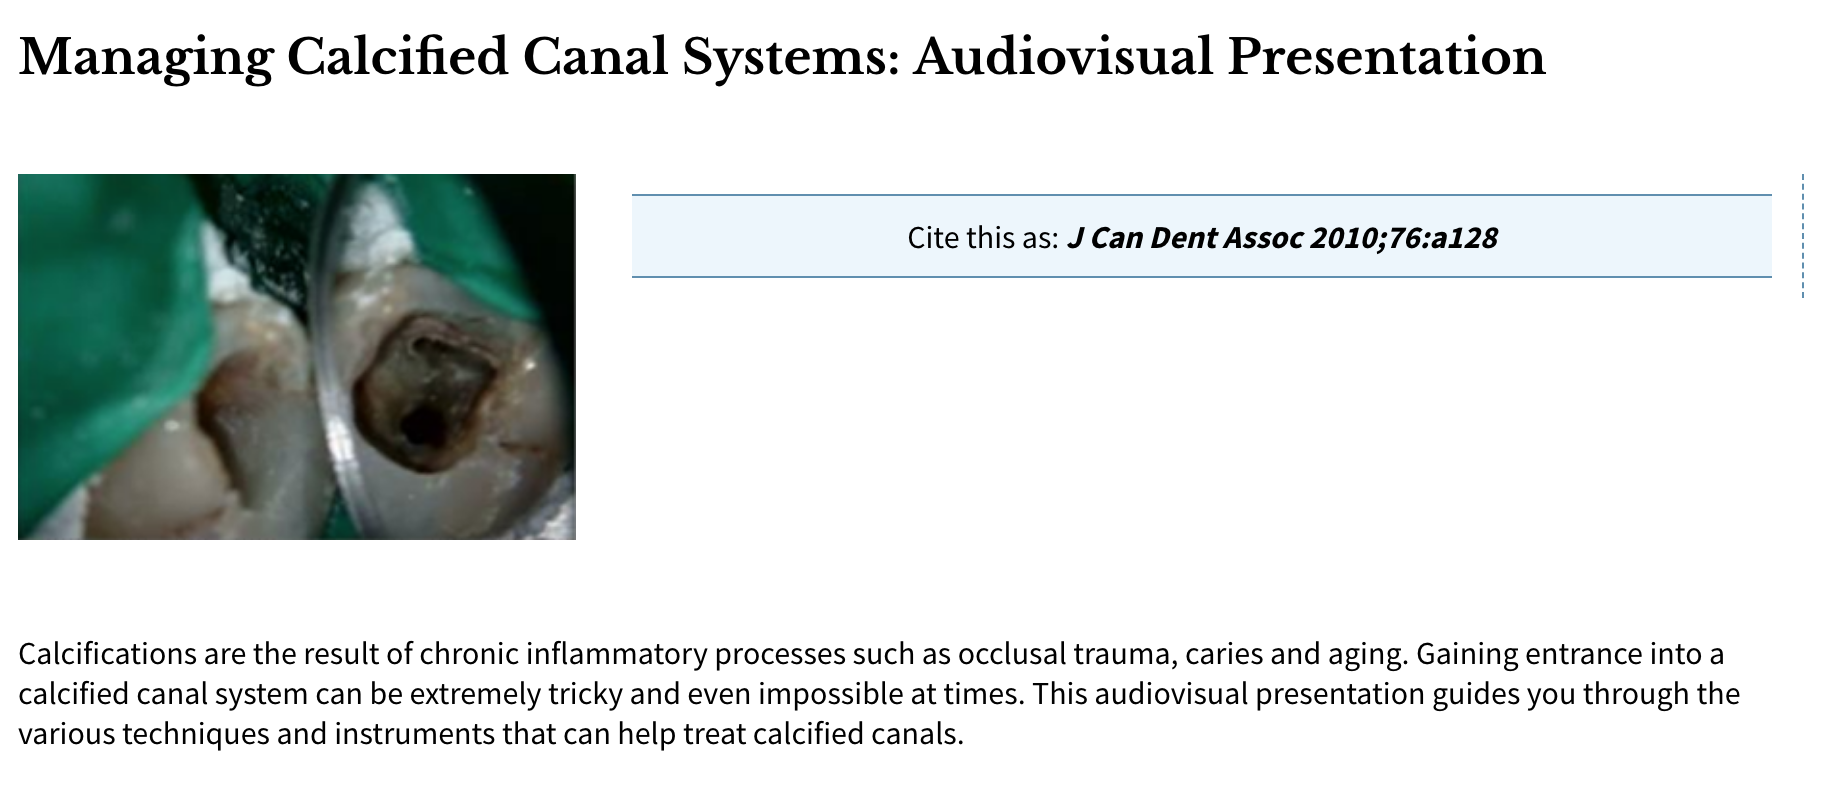 Dr. Mary Dabuleanu - Webinar: Managing Calcified Canal Systems